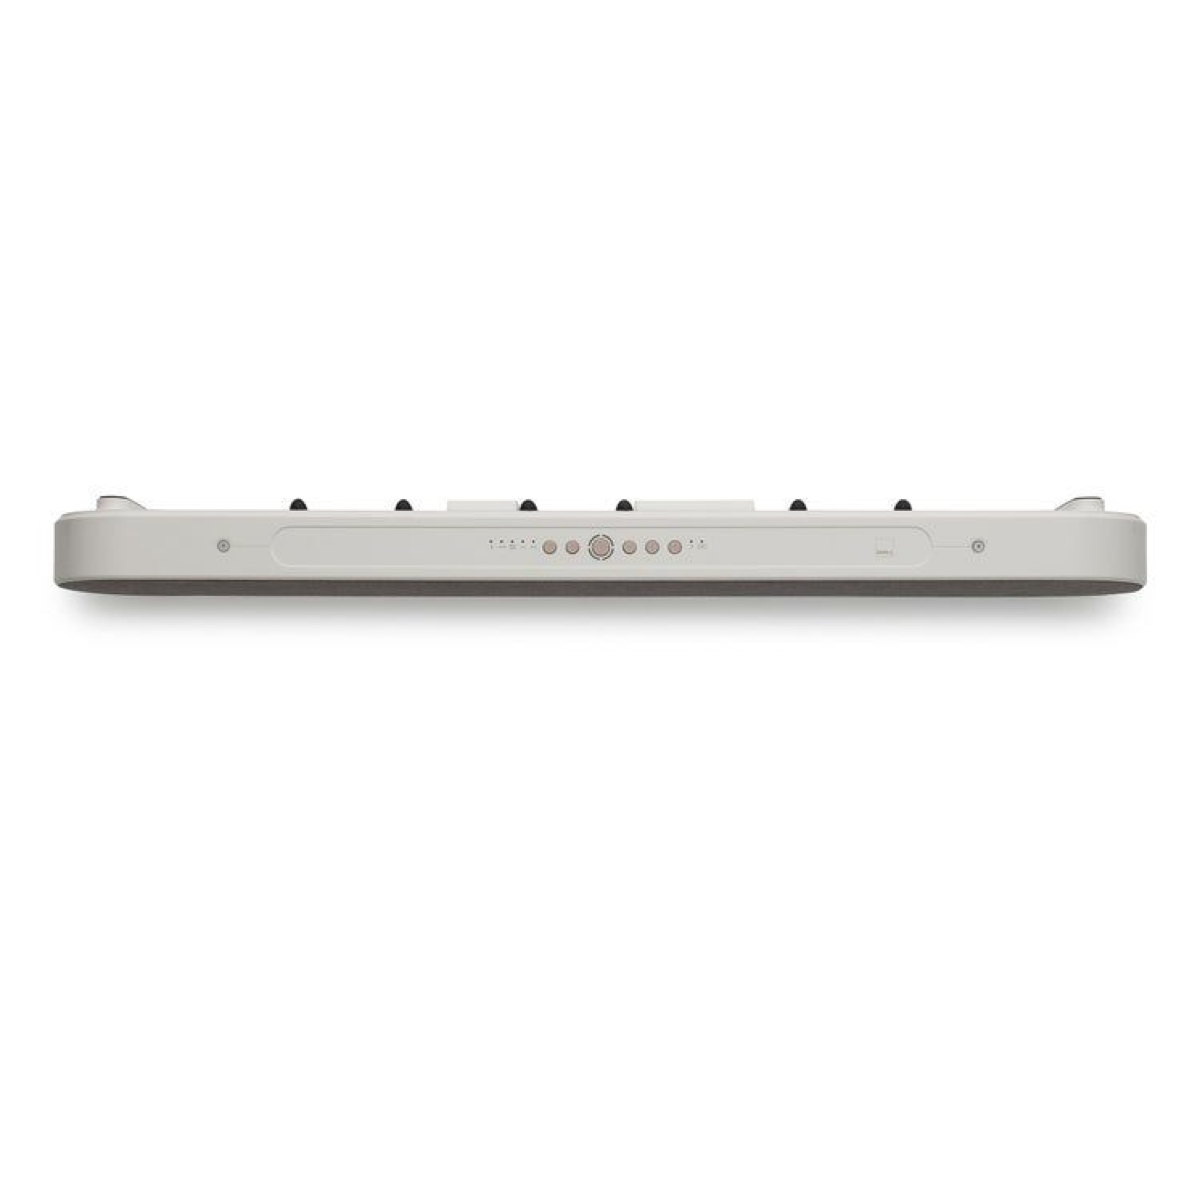 Dali Katch One - Soundbar, Dali Speakers, Soundbar - AVStore.in